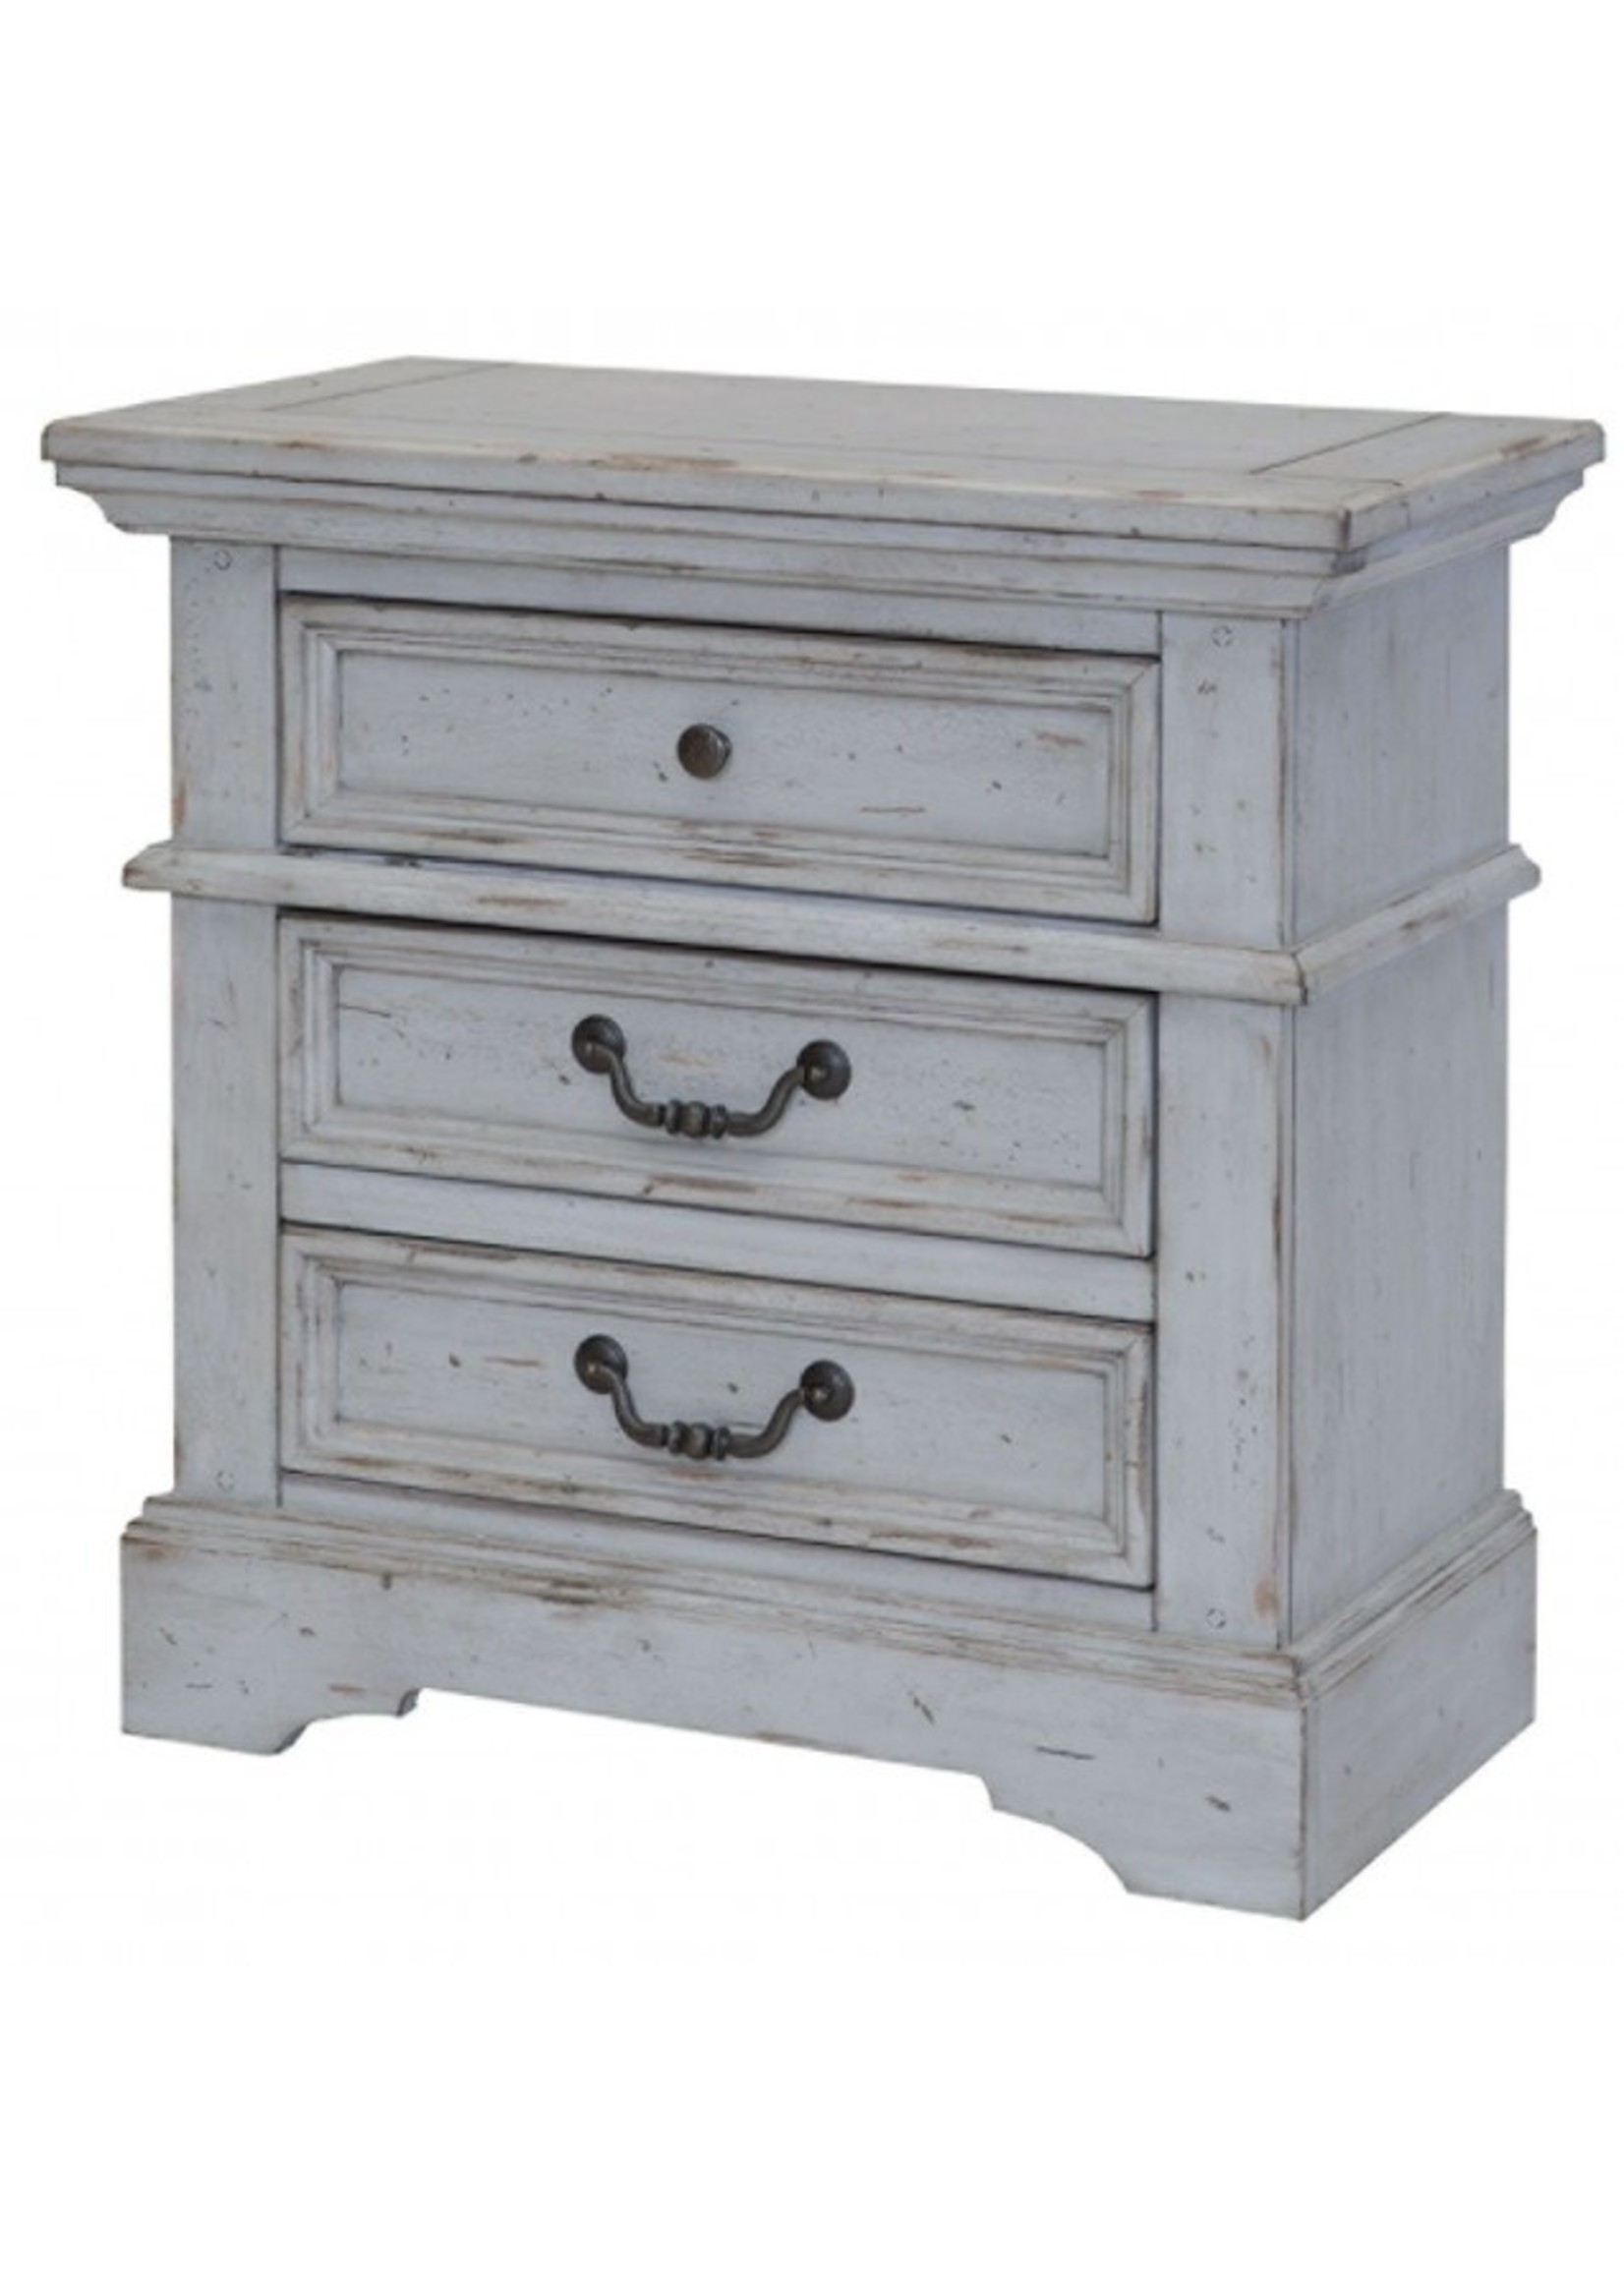 AMERICAN WDCRFT 7820-420 YOUTH NIGHTSTAND STONEBROOK GRAY